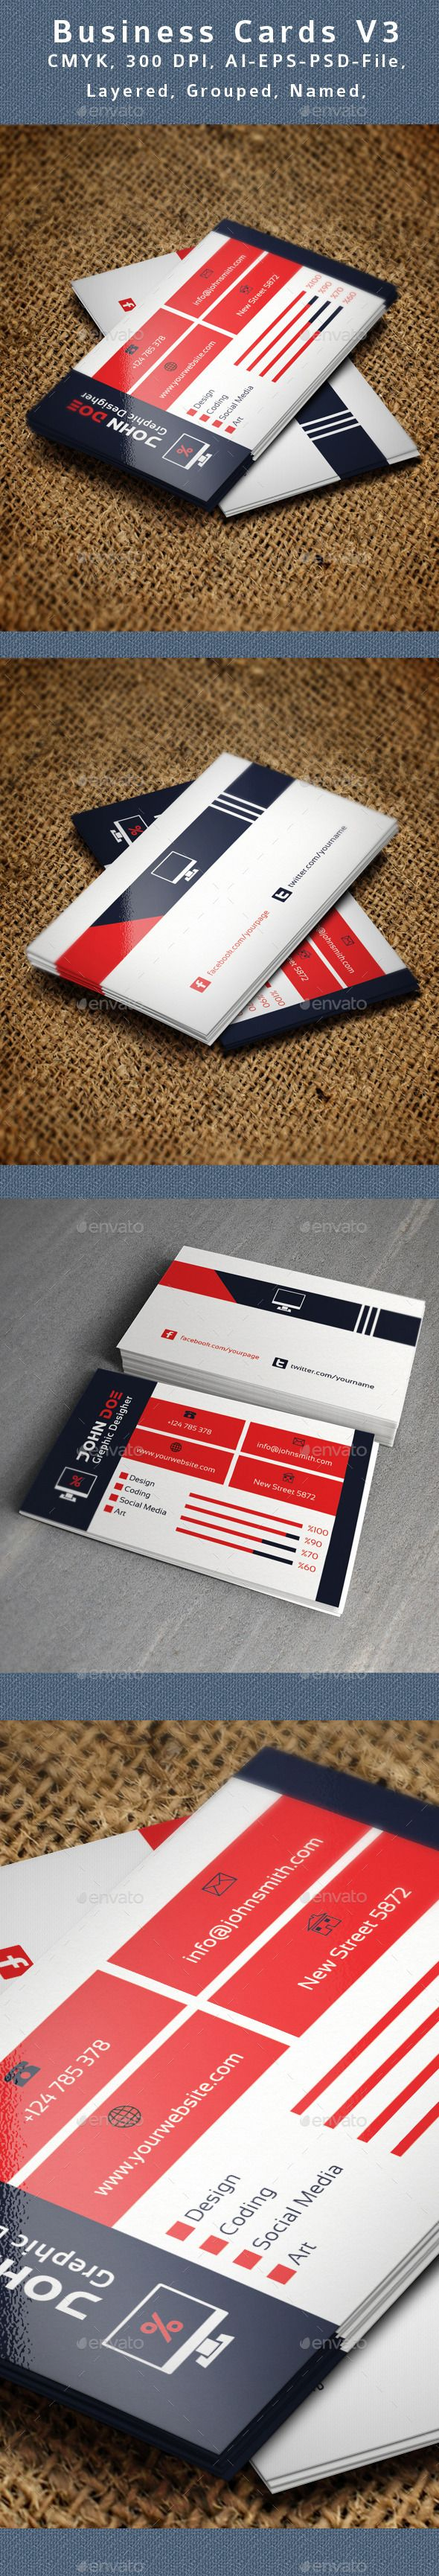 134 best Creative Business Cards images on Pinterest